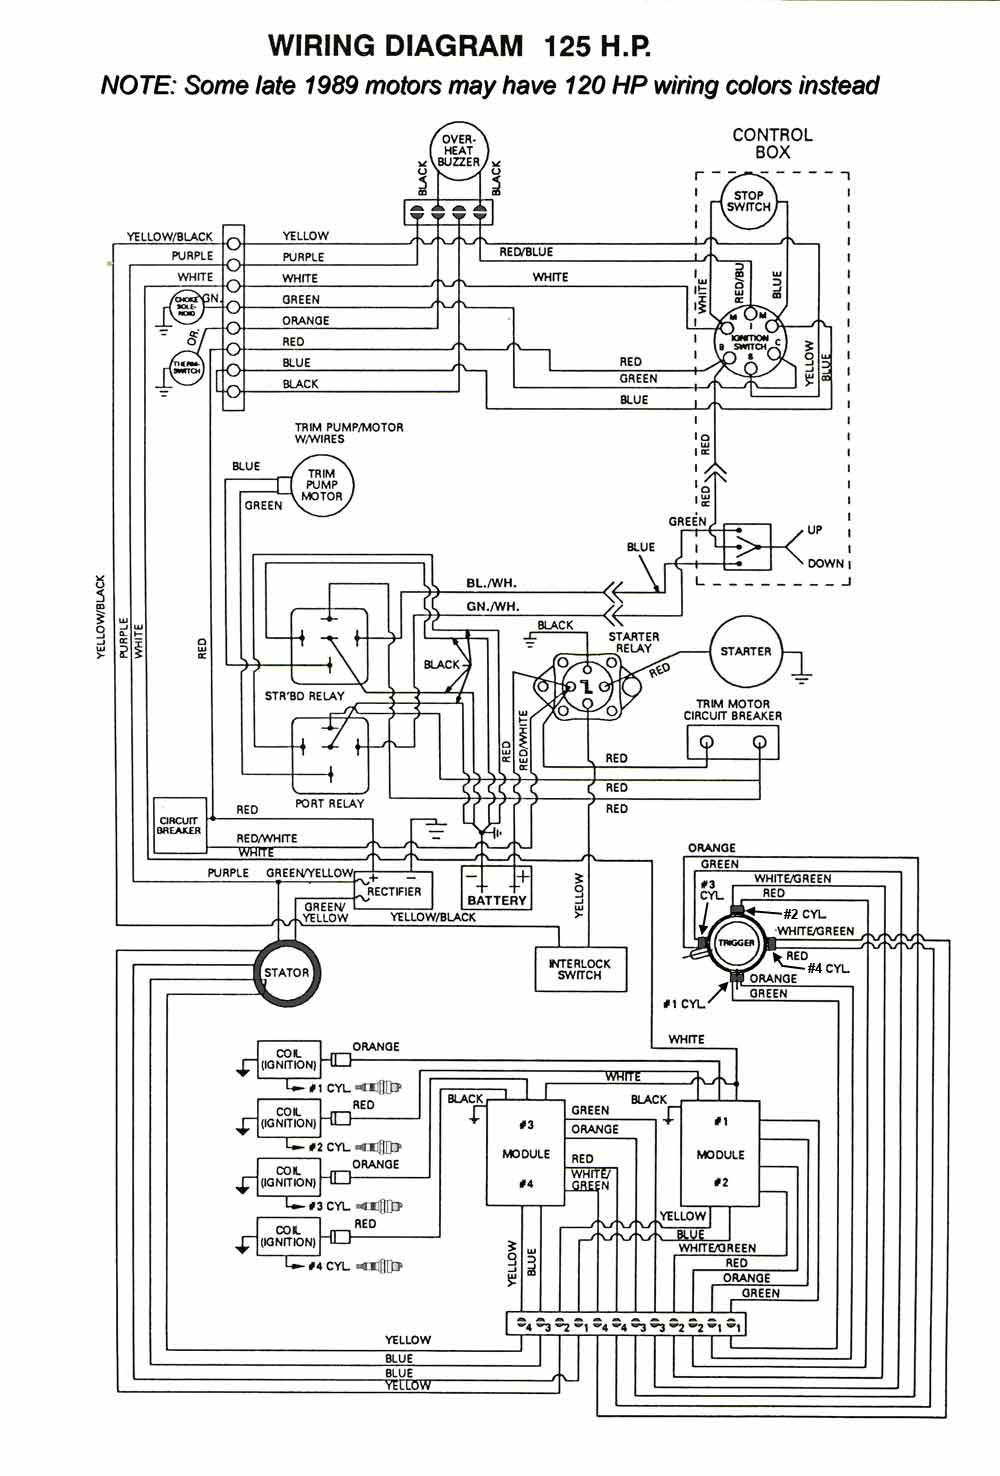 hight resolution of chrysler outboard wiring diagrams mastertech marine rh maxrules com 1996 mercury outboard wiring diagram 40 hp 1989 force 50 hp outboard wiring diagram